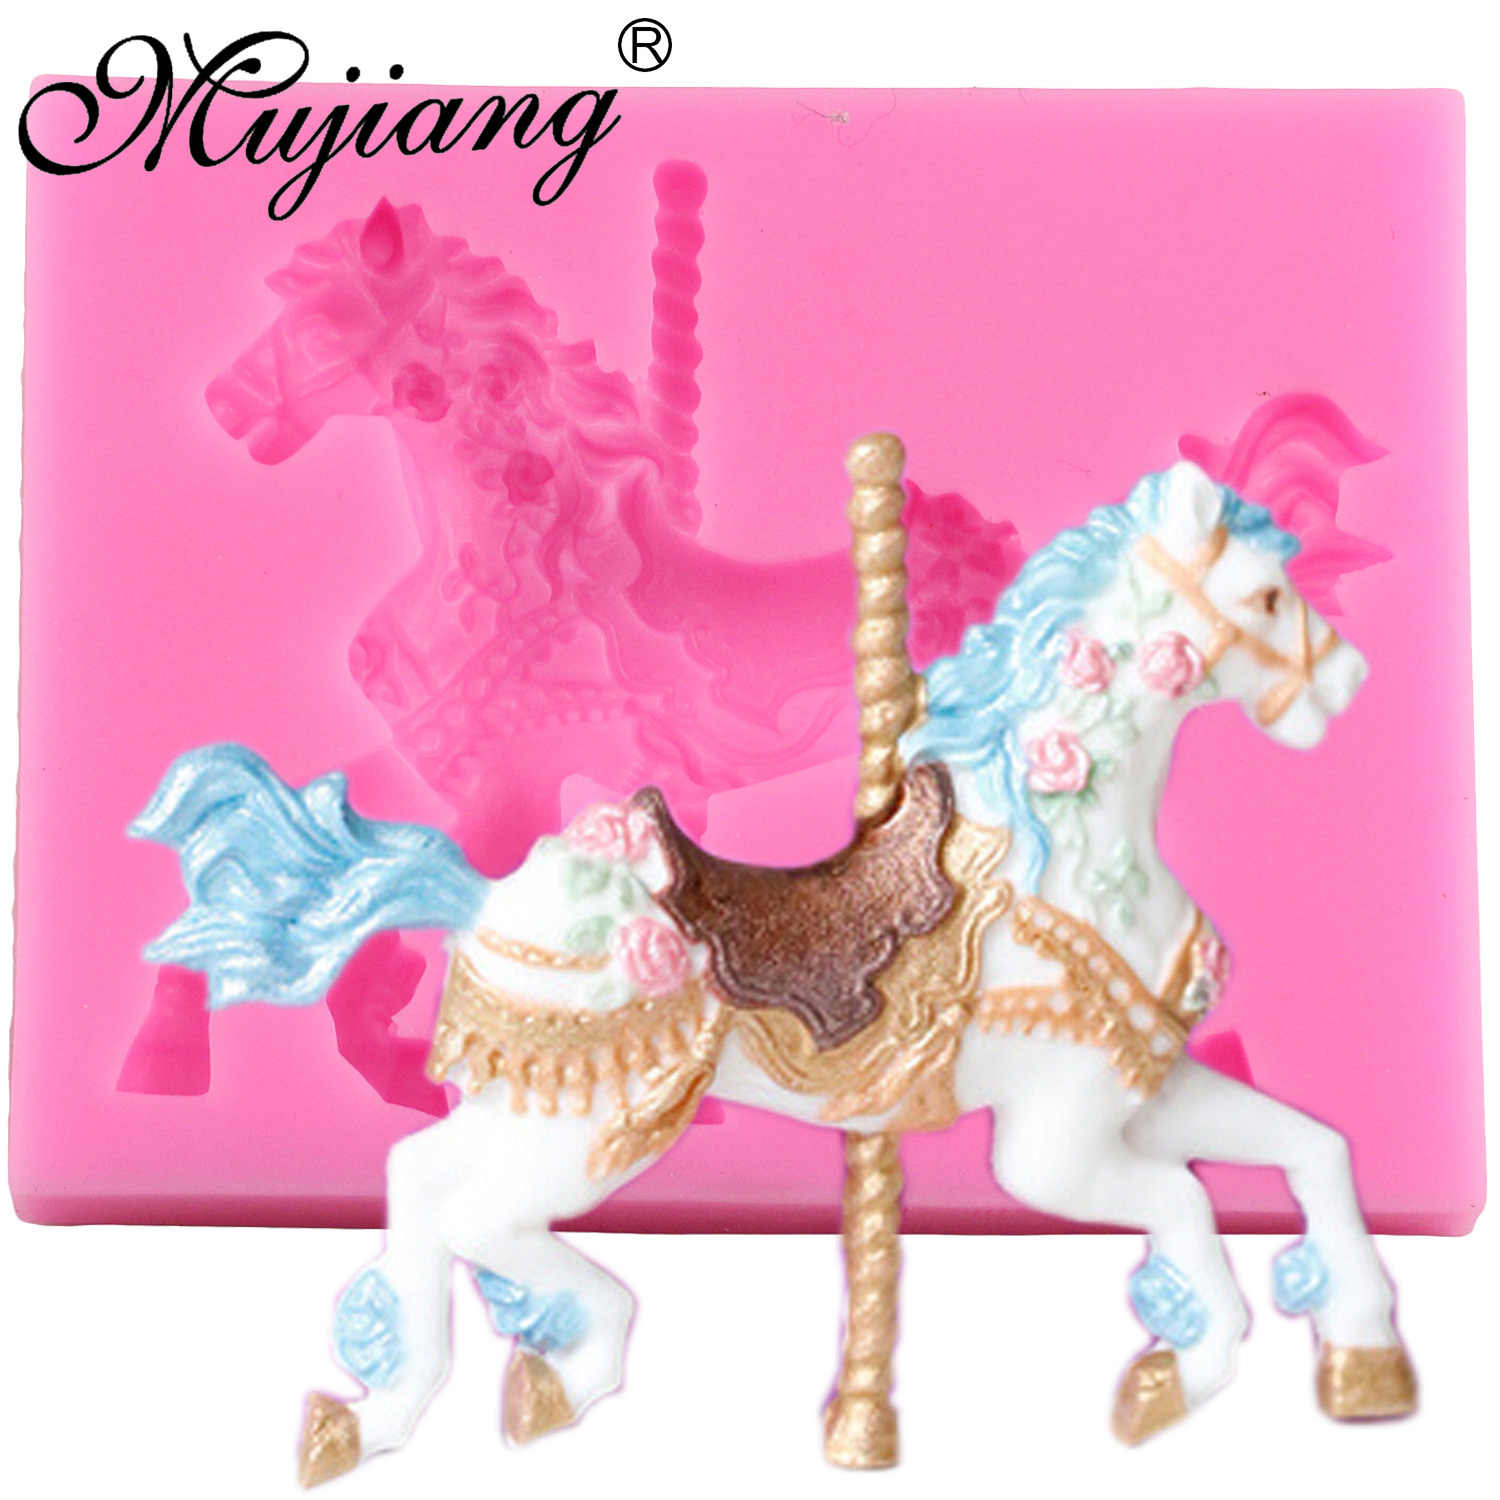 Mujiang 3d Jewelry Carousel Horse Silicone Fondant Molds Party Cake Decorating Tools Candy Clay Chocolate Gumpaste Moulds Silicone Fondant Cake Decorating Toolsdecorating Tools Aliexpress